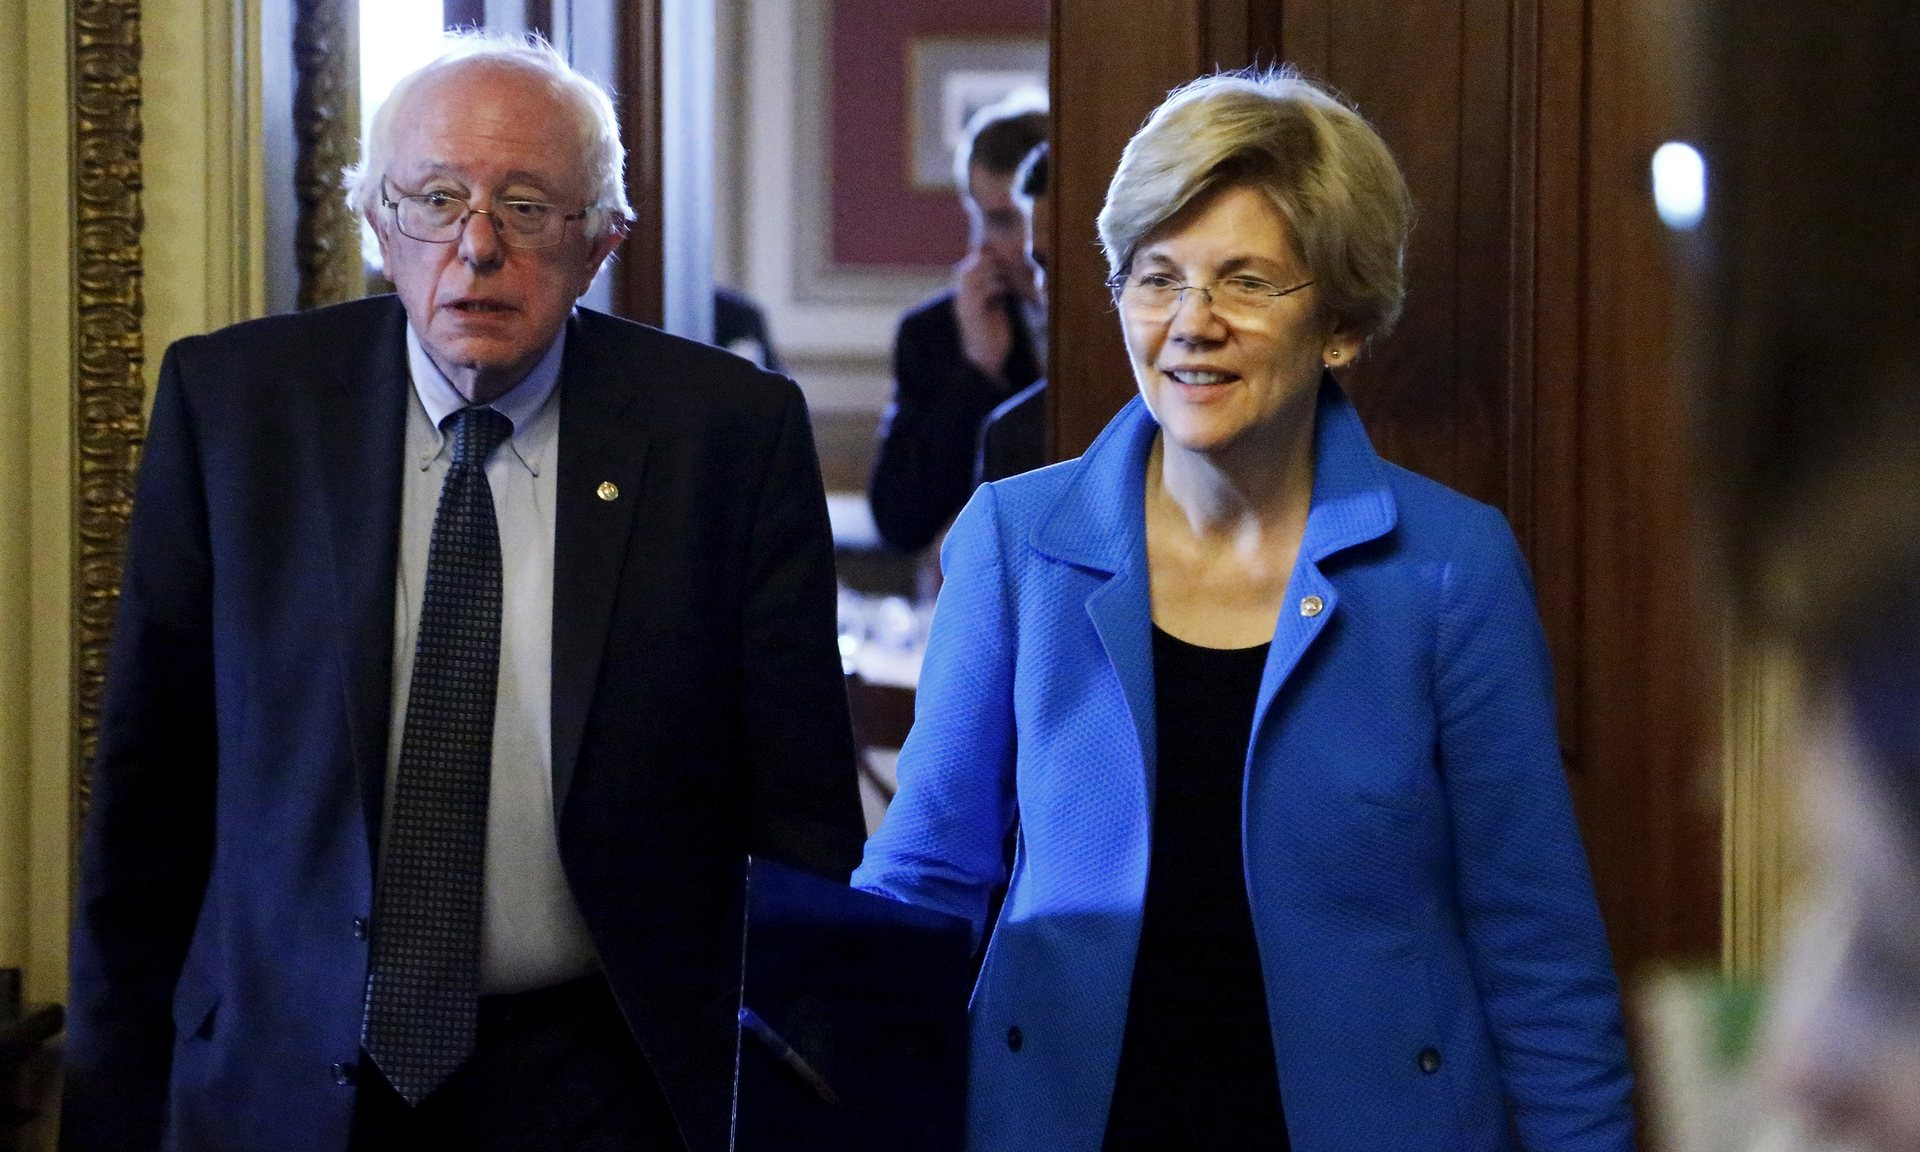 Bernie Sanders and Elizabeth Warren in Washington. Warren has so far declined to endorse either Sanders or Clinton. Photograph: Jonathan Ernst/Reuters